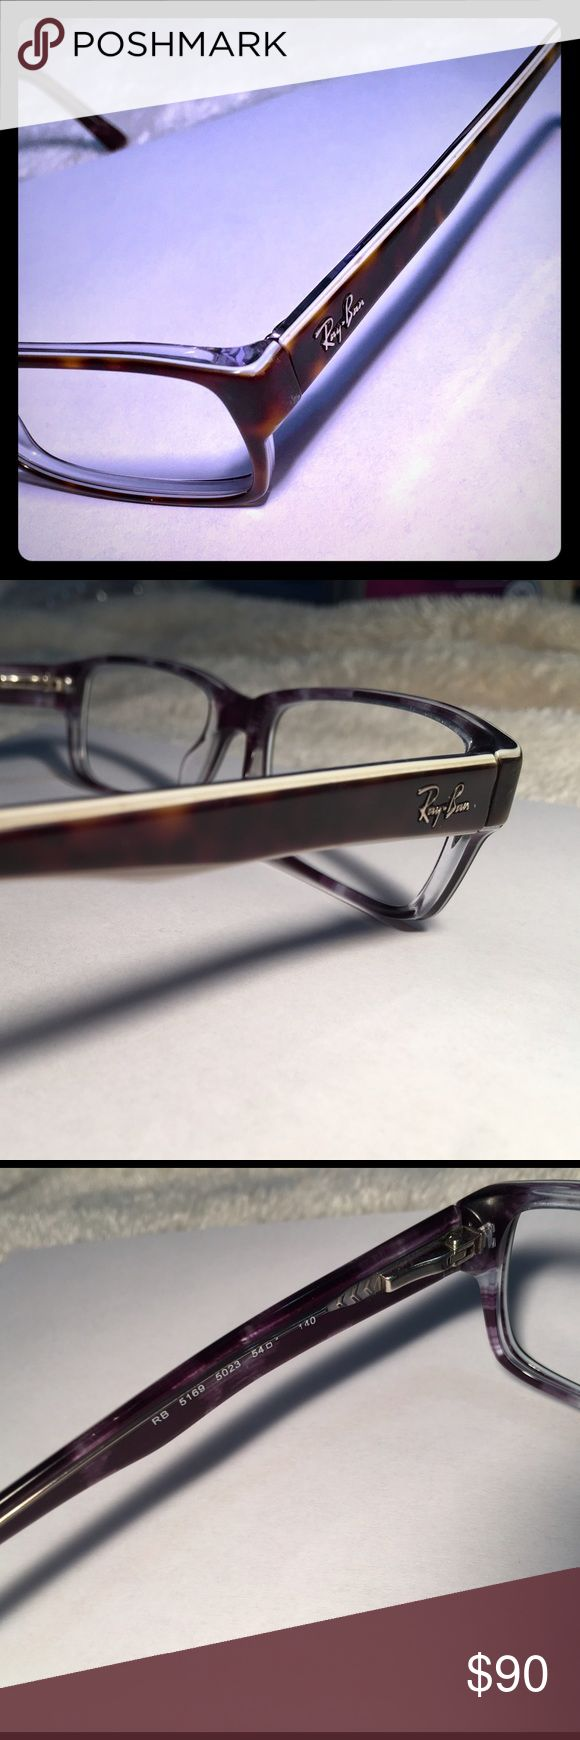 Ray Ban Eyeglasses Frames Style Code: RB 5169 5023. These Authentic Ray Ban Eyeglass frames are in great condition having been used for a year. The frames have incurred some minimal scratches from everyday use. The arms have been straightened. The frames have been cleaned and polished. The eyeglass frame bridge size measurements have rubbed off due to everyday wear.  These particular frames do NOT come with: -Lenses -Original Ray Bans Case -Original Ray Bans Cleaning Cloth Ray-Ban…